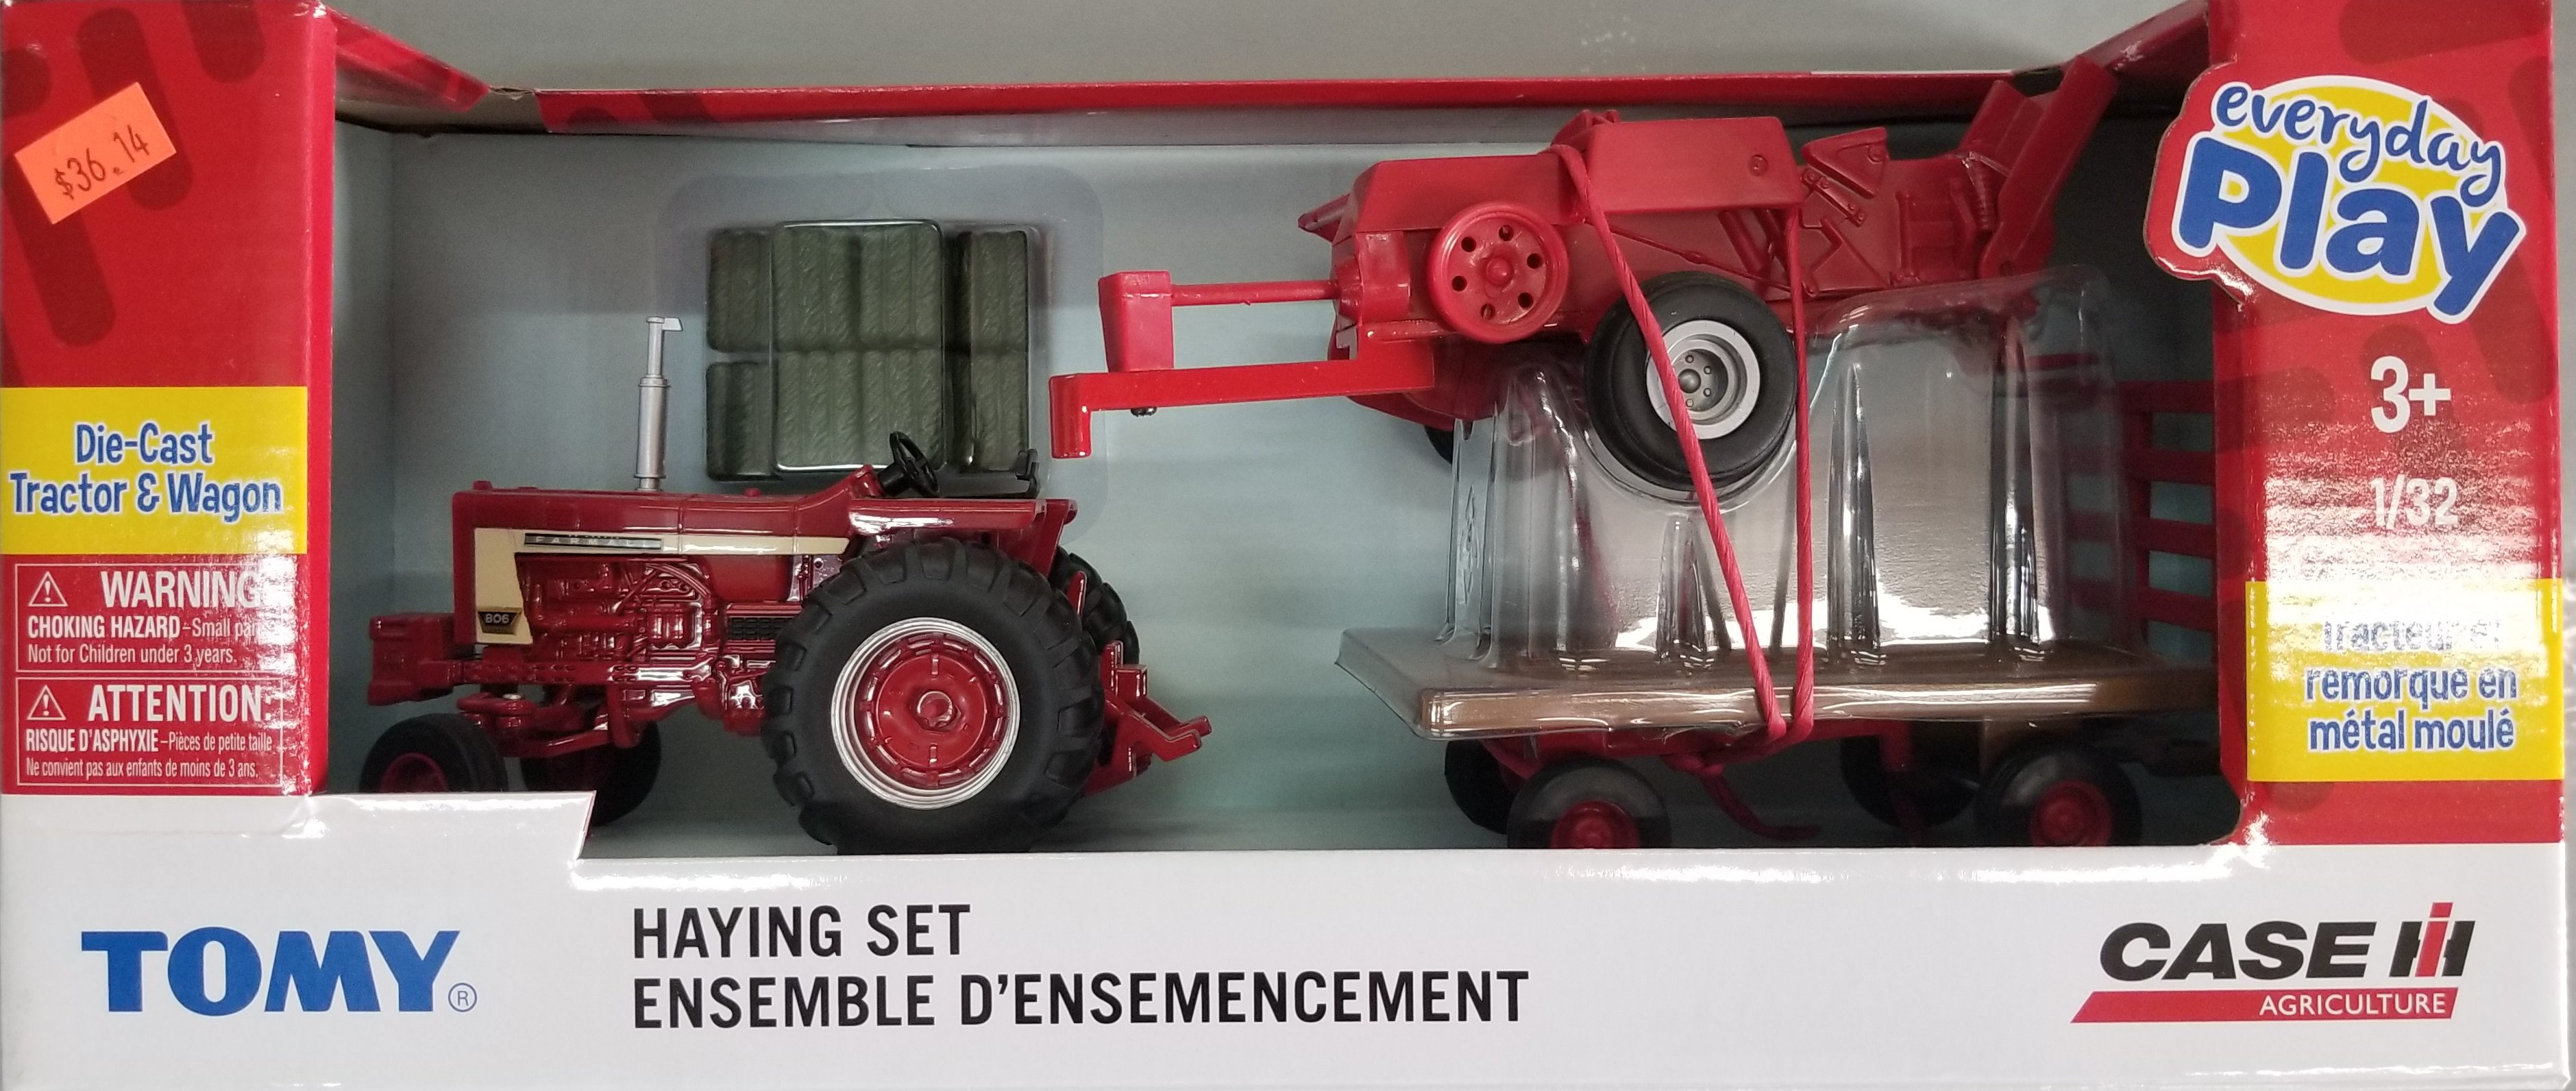 1/32 DIE CAST TRACTOR AND WAGON EVERYDAY PLAY TOMY